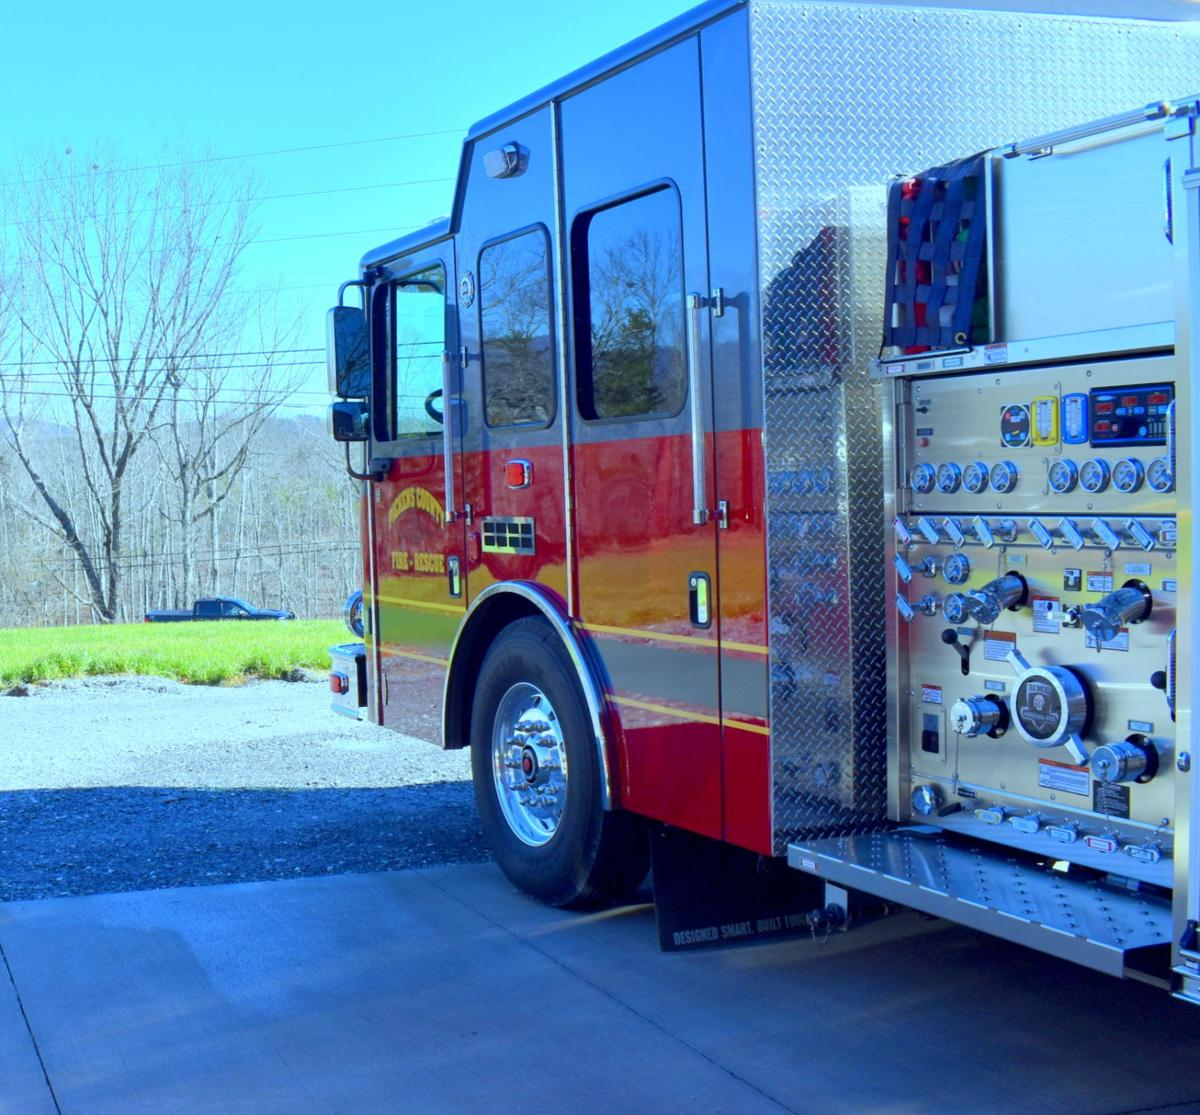 Pickens County opens new fire station in Tate